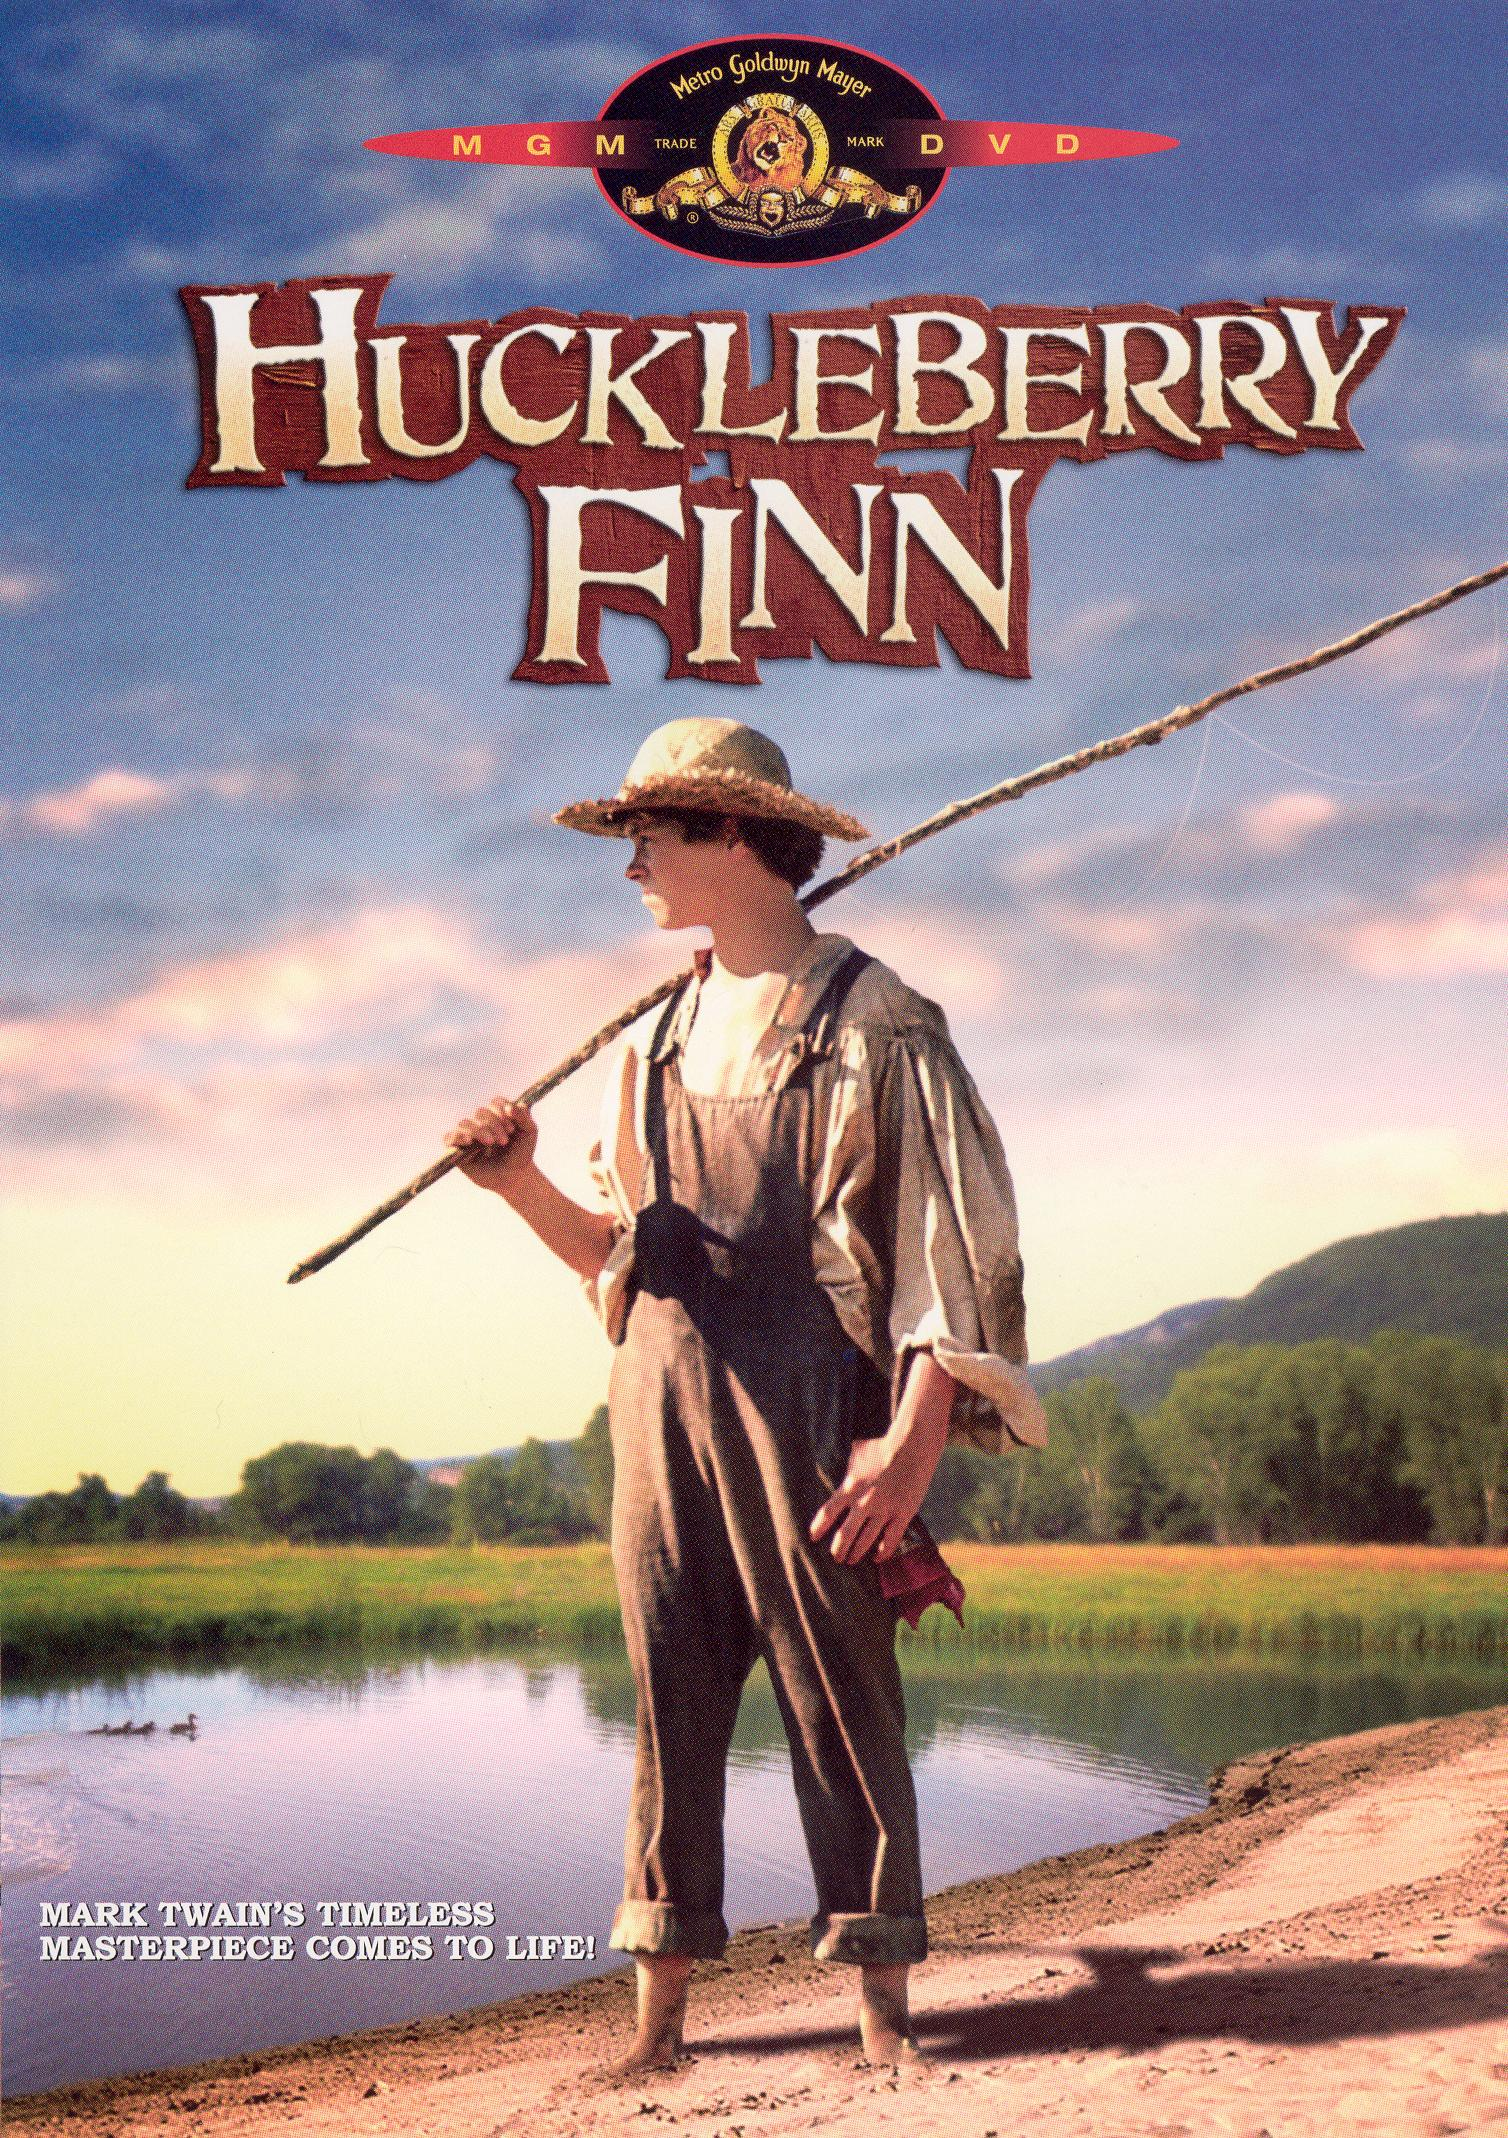 an analysis of themes in the adventures of huckleberry finn by mark twain A summary of motifs in mark twain's the adventures of huckleberry finn learn exactly what happened in this chapter, scene, or section of the adventures of huckleberry finn and what it means.